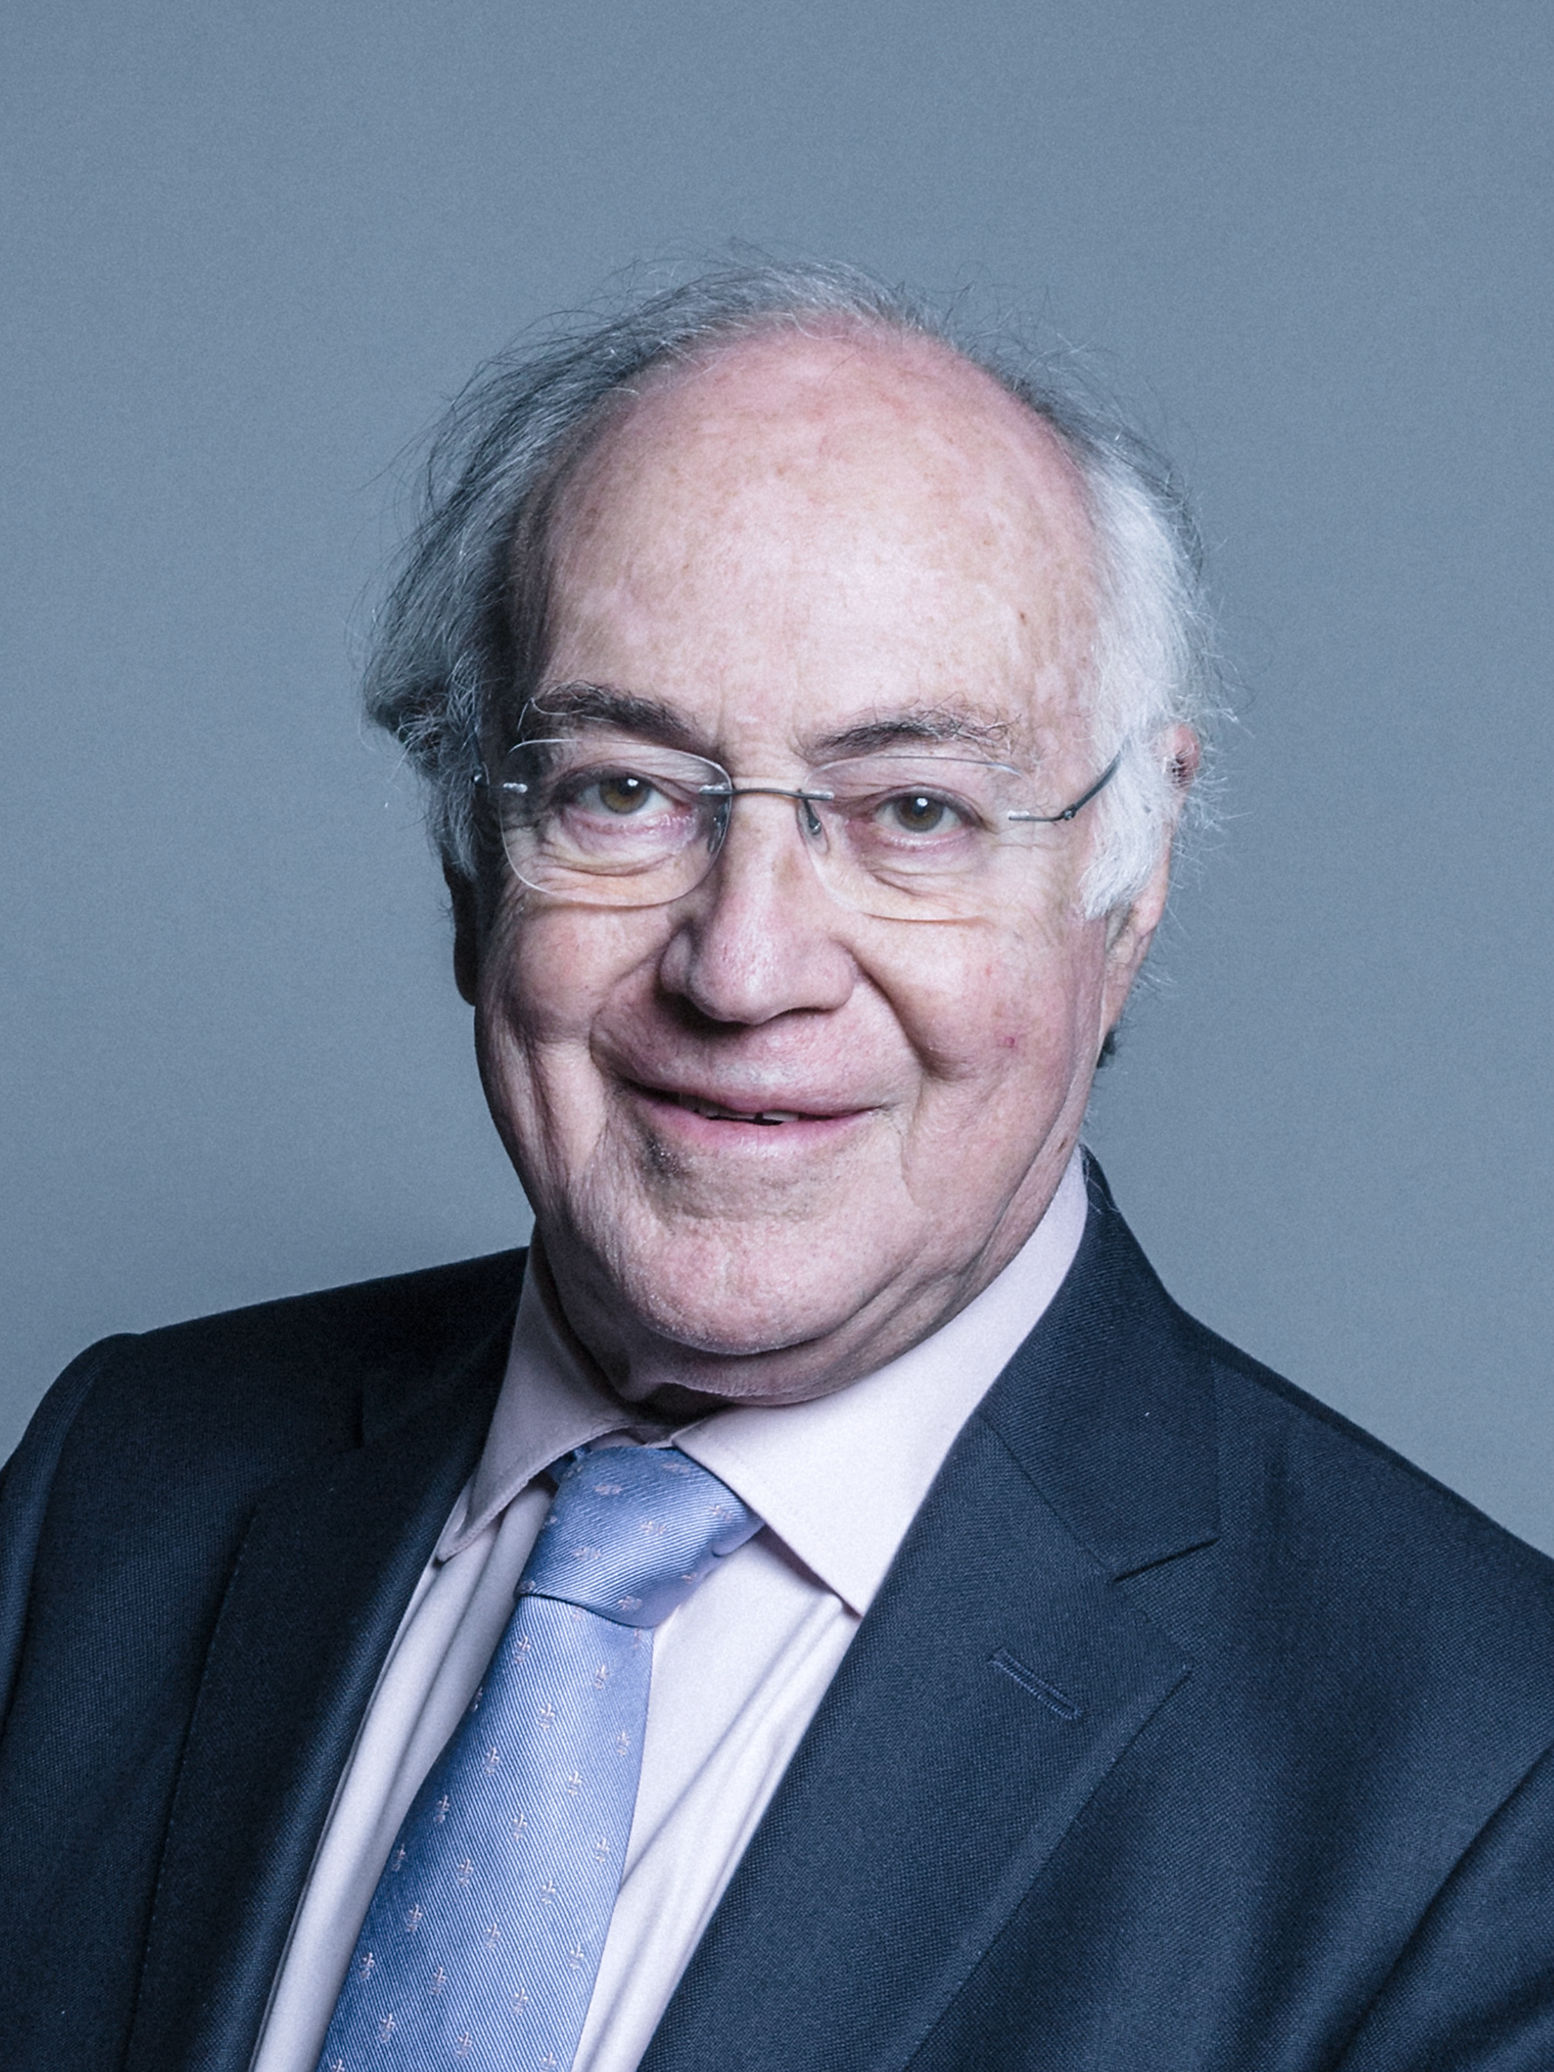 Michael Howard - Wikipedia